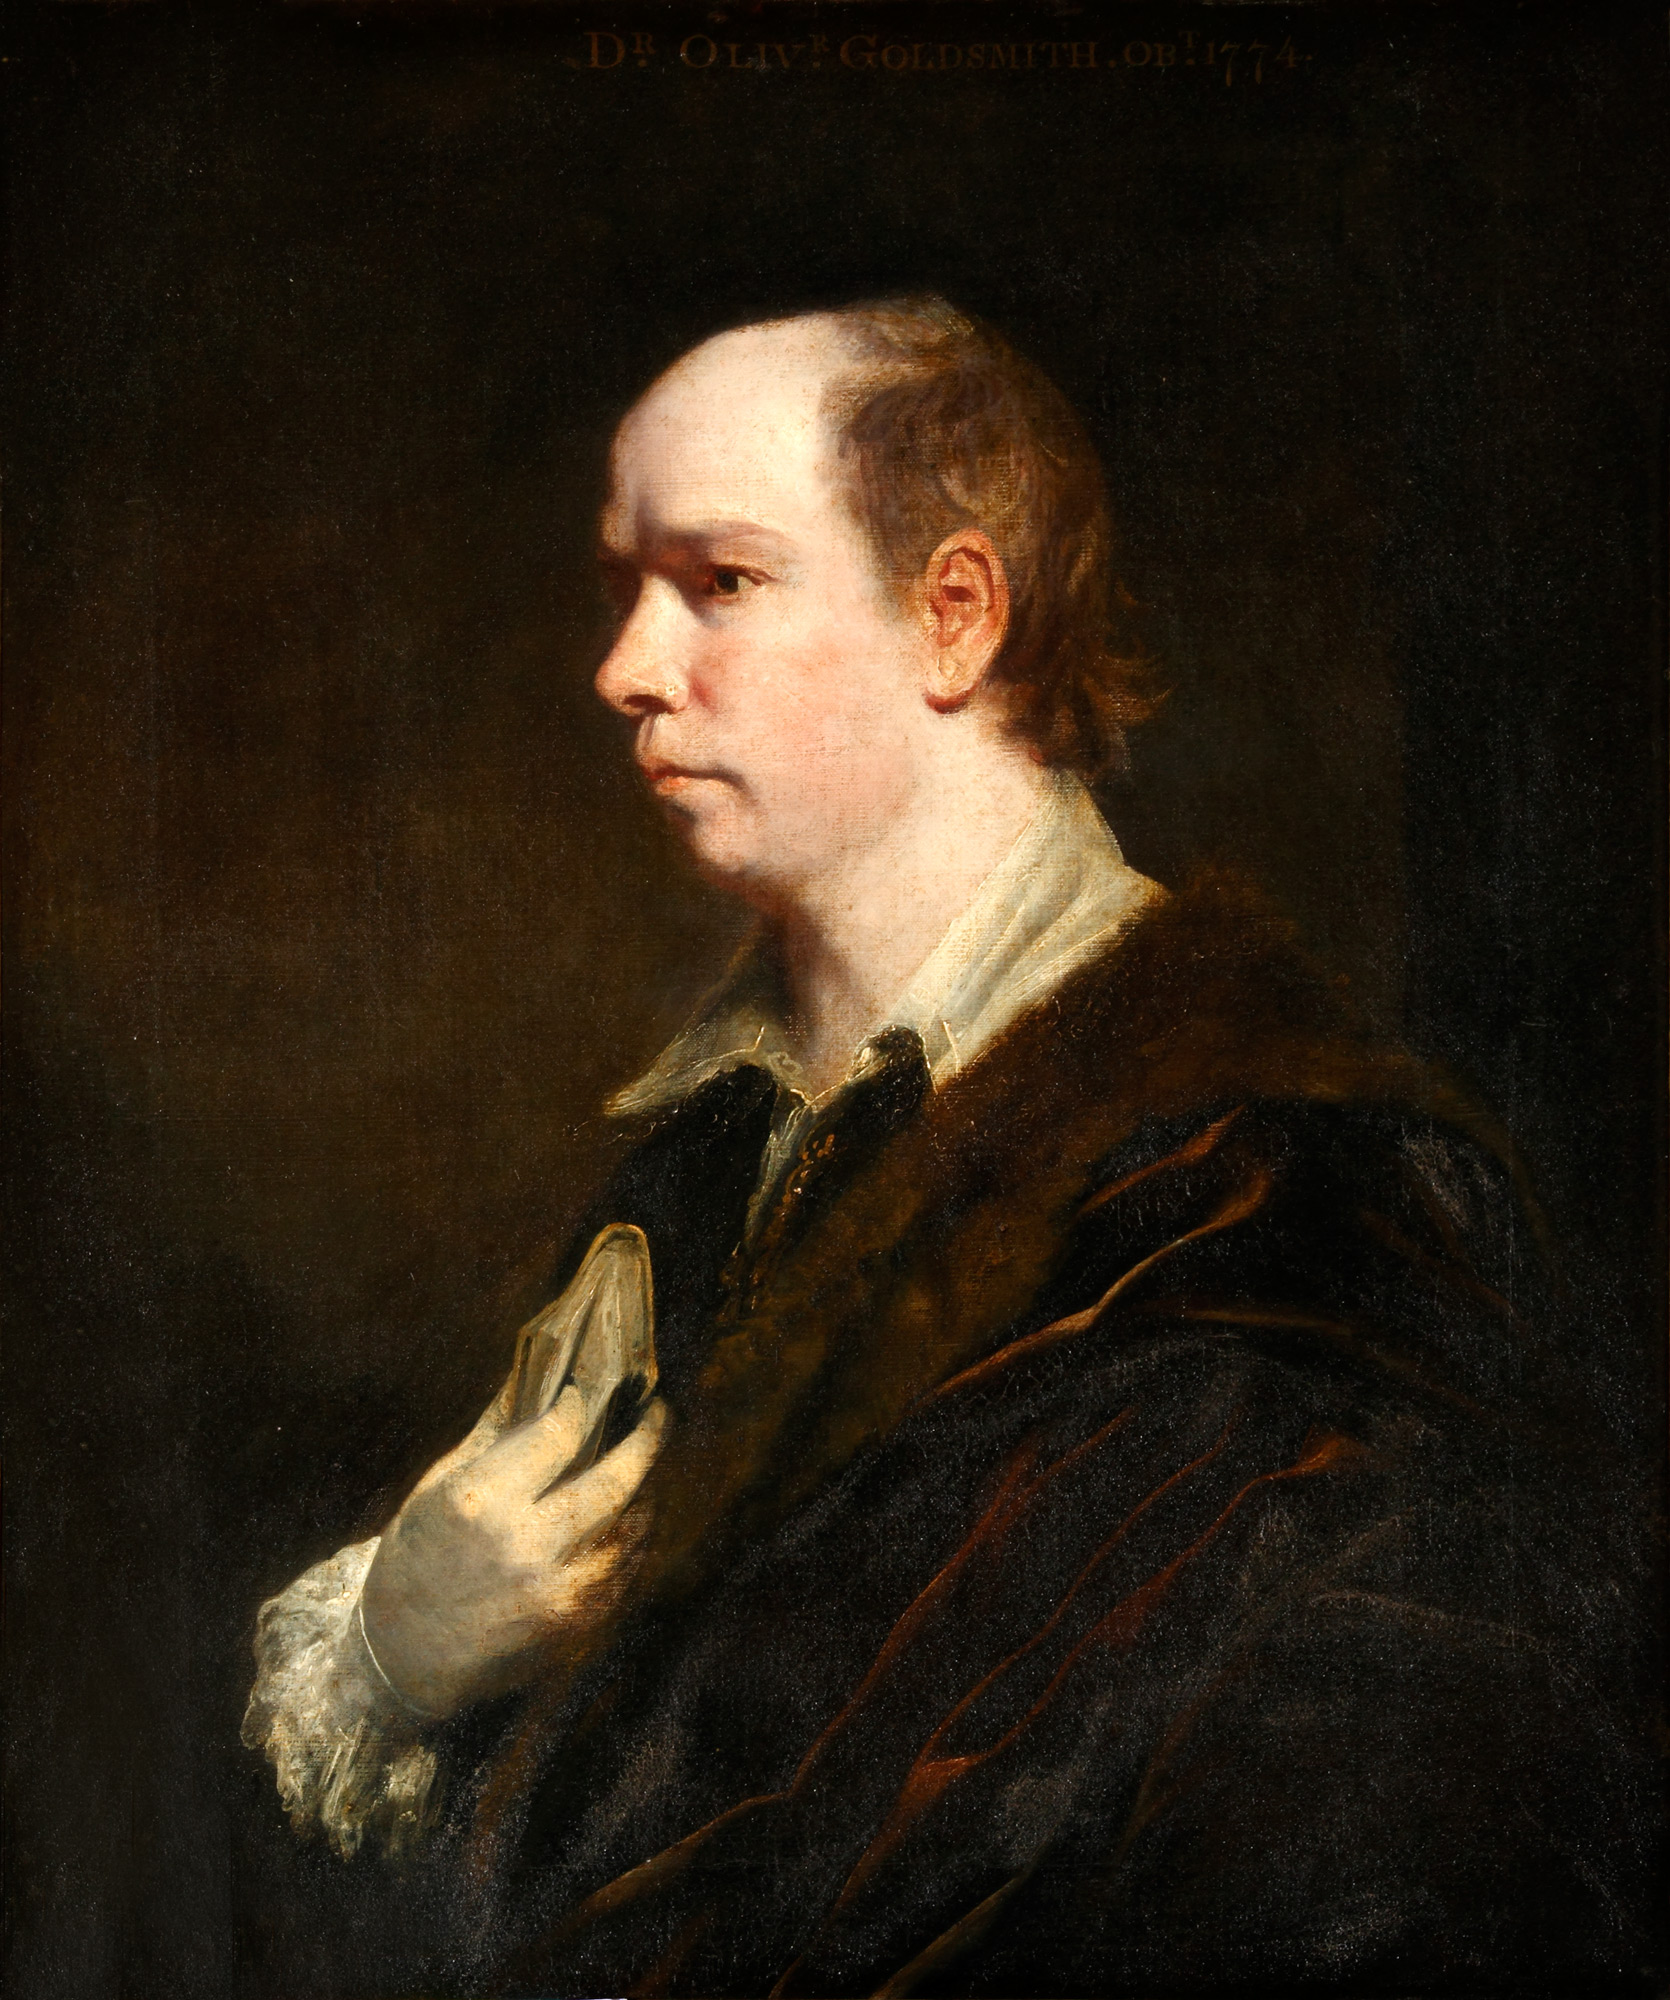 Portrait of Oliver Goldsmith by Joshua Reynolds